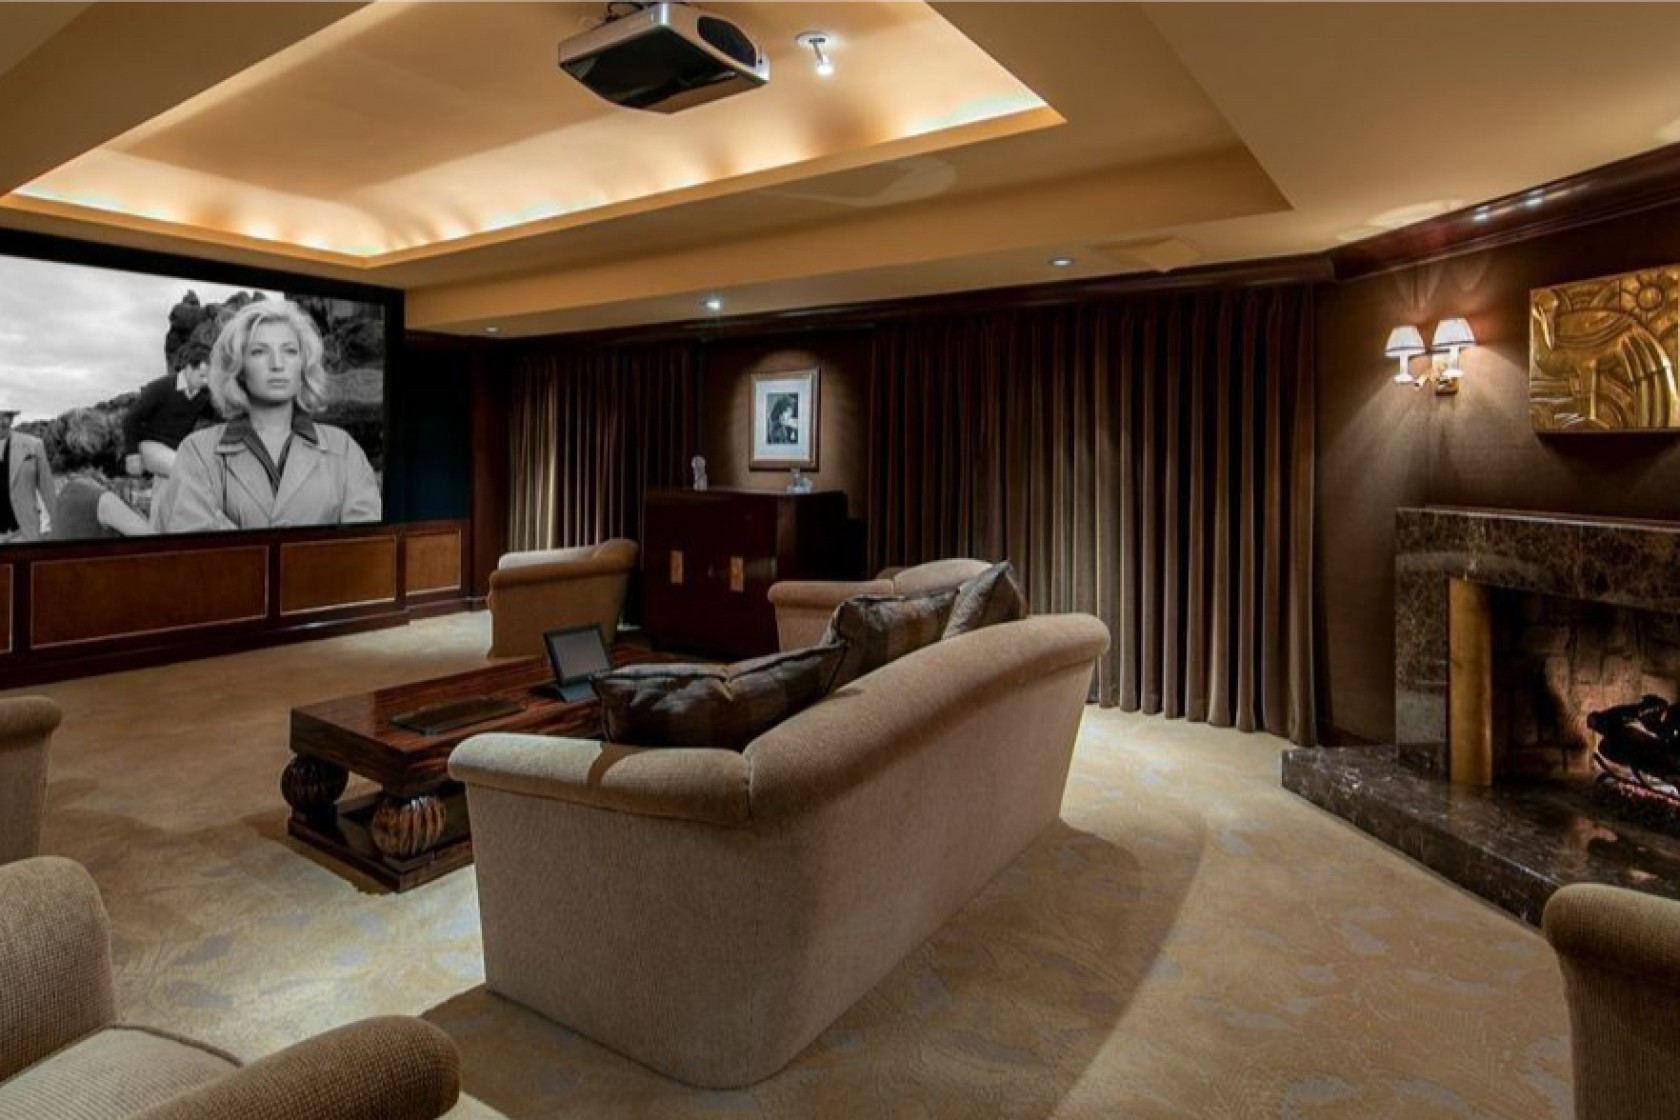 Cinema a casa / Realtor.com